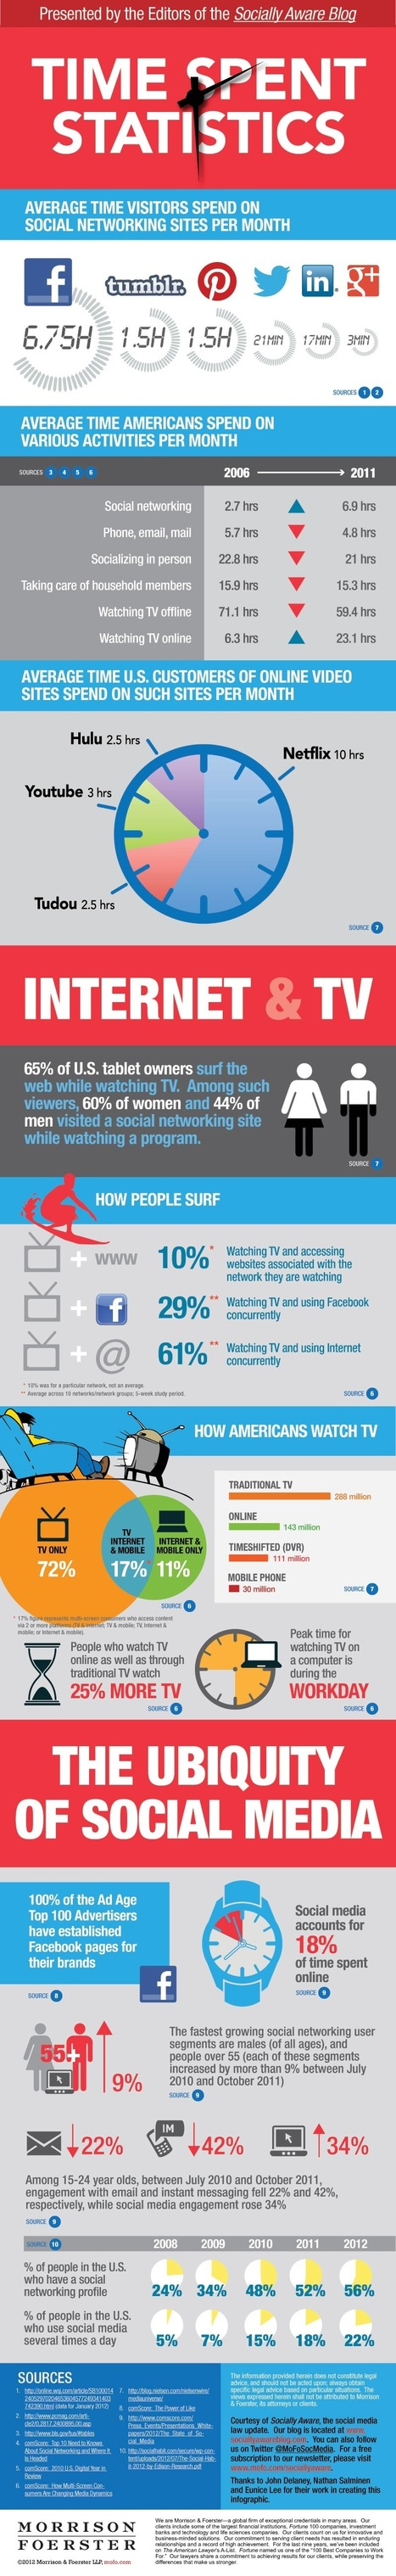 Users Average 7 Hours A Month On Facebook, Just 3 Minutes On Google+ [Infographic] | Technologies numériques & Education | Scoop.it